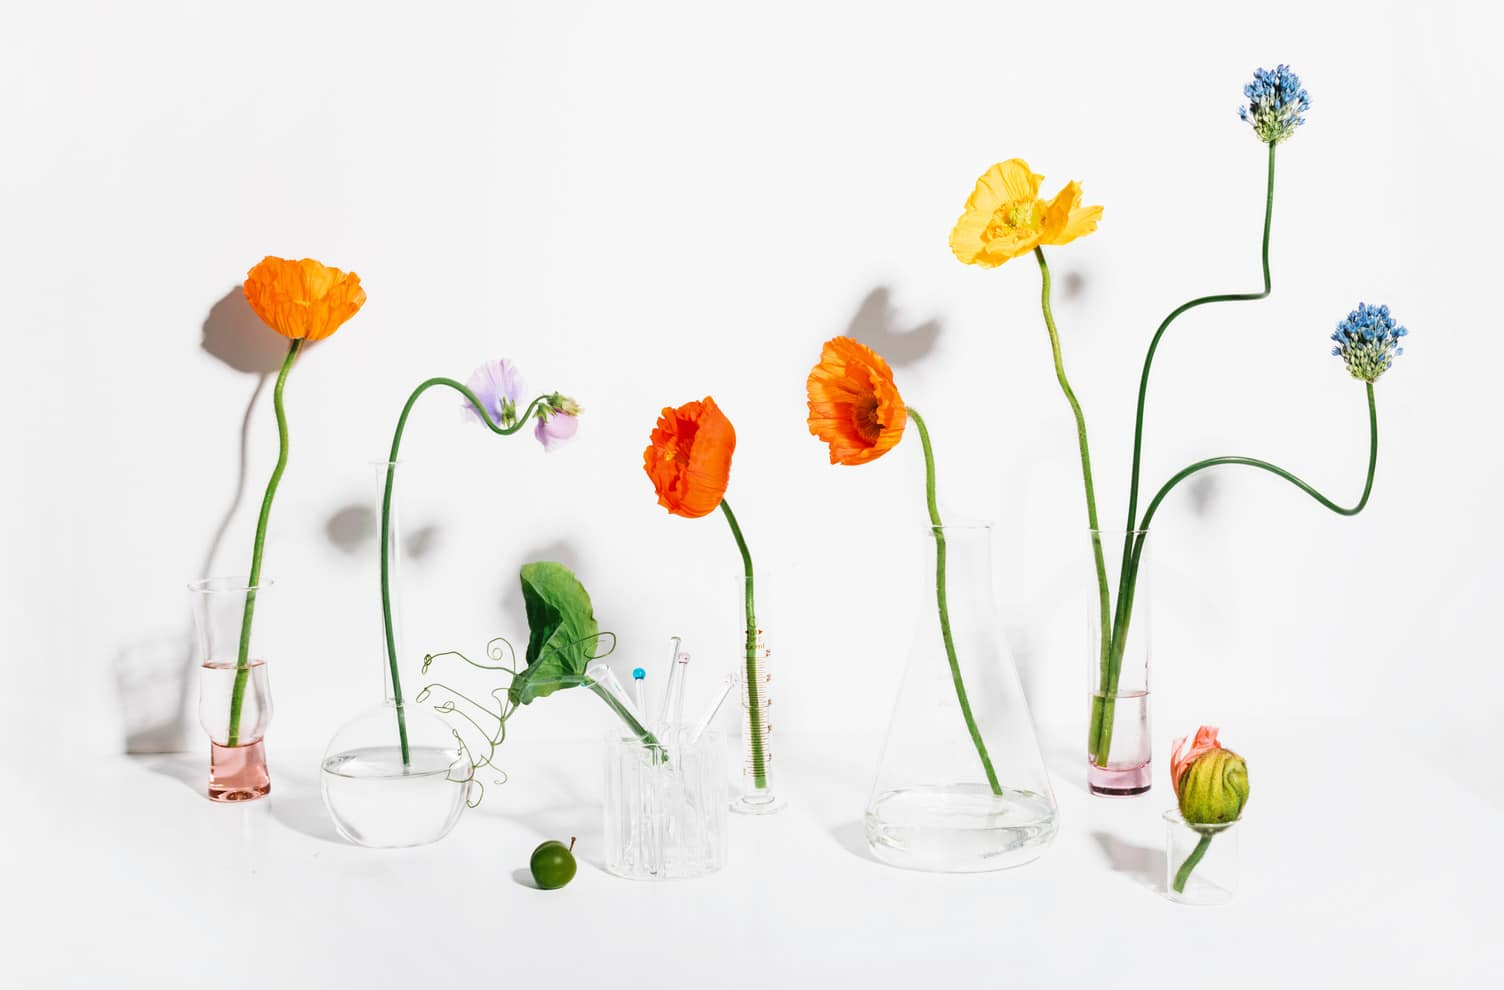 beakers and flowers sakara supplements